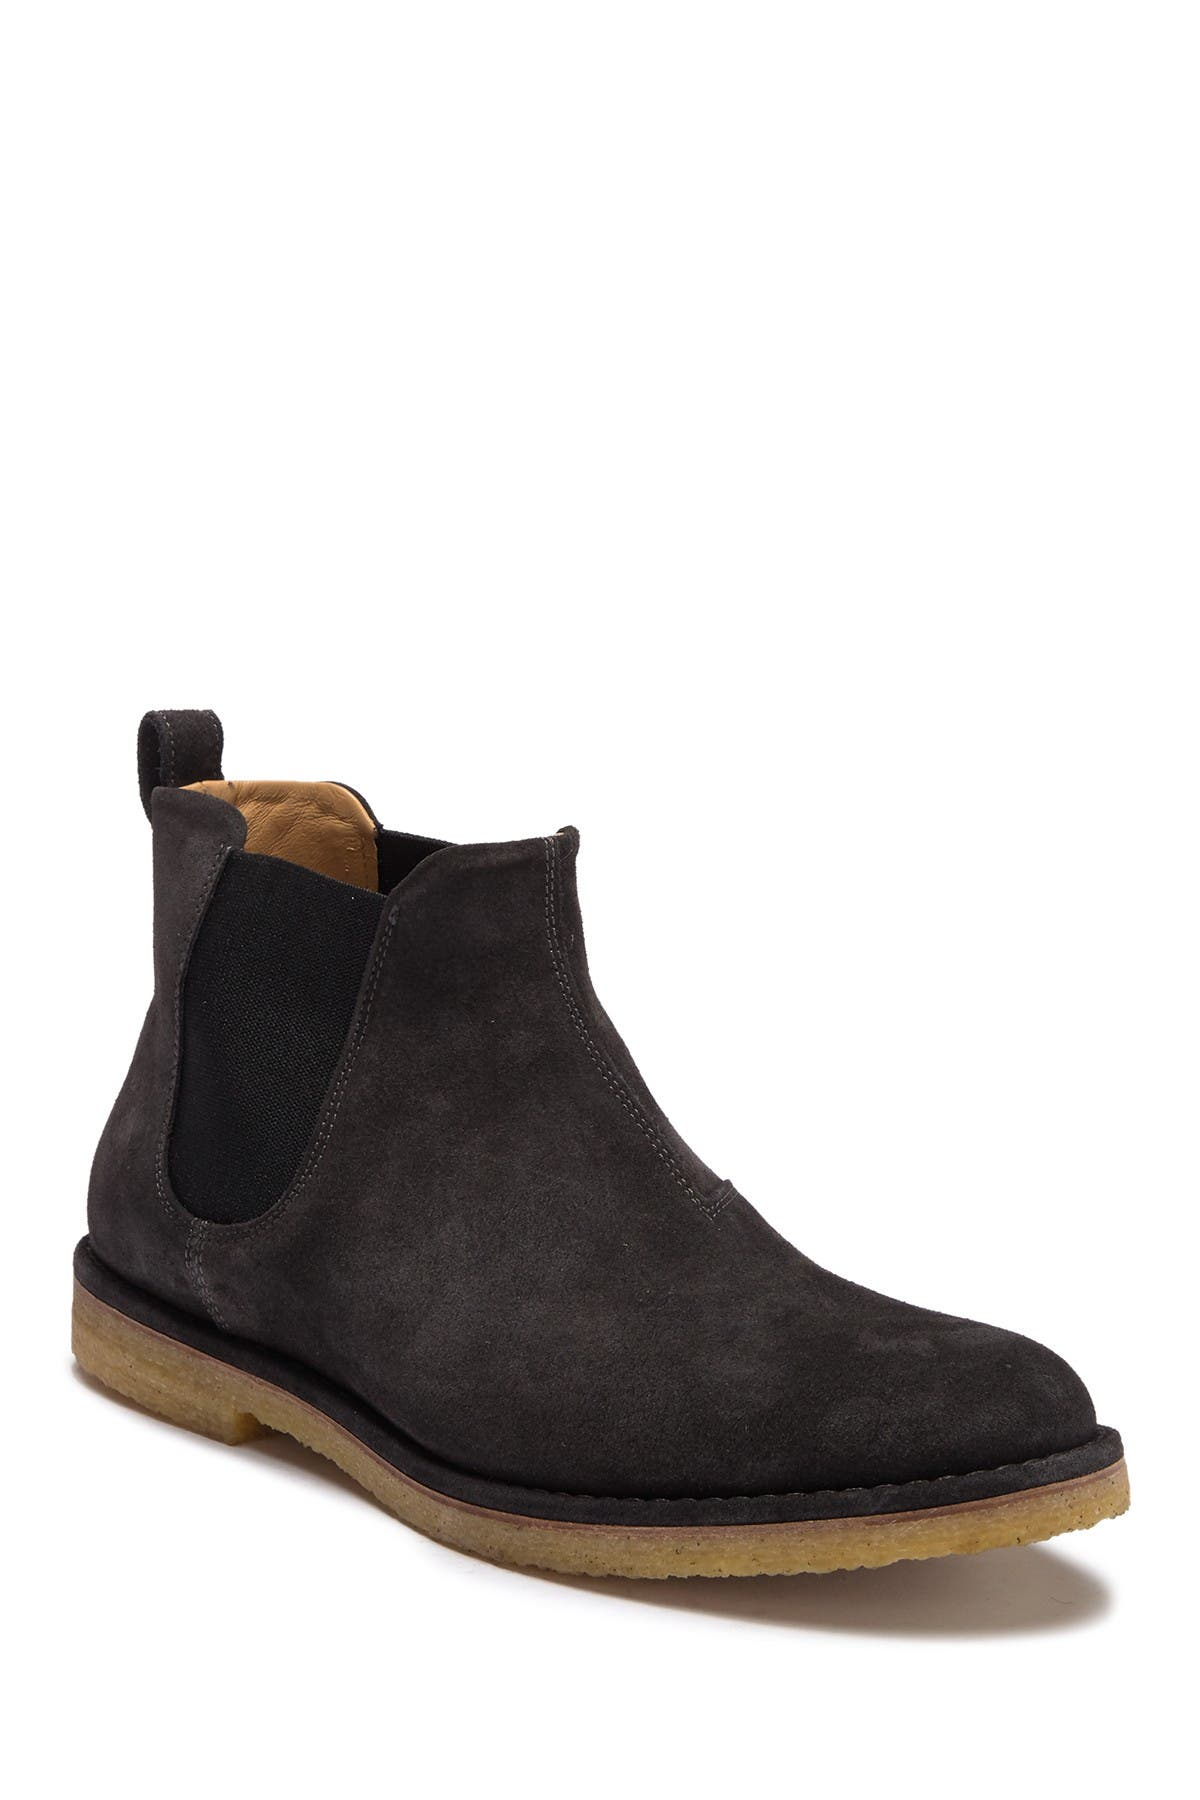 Vince | Sawyer Suede Chelsea Boot